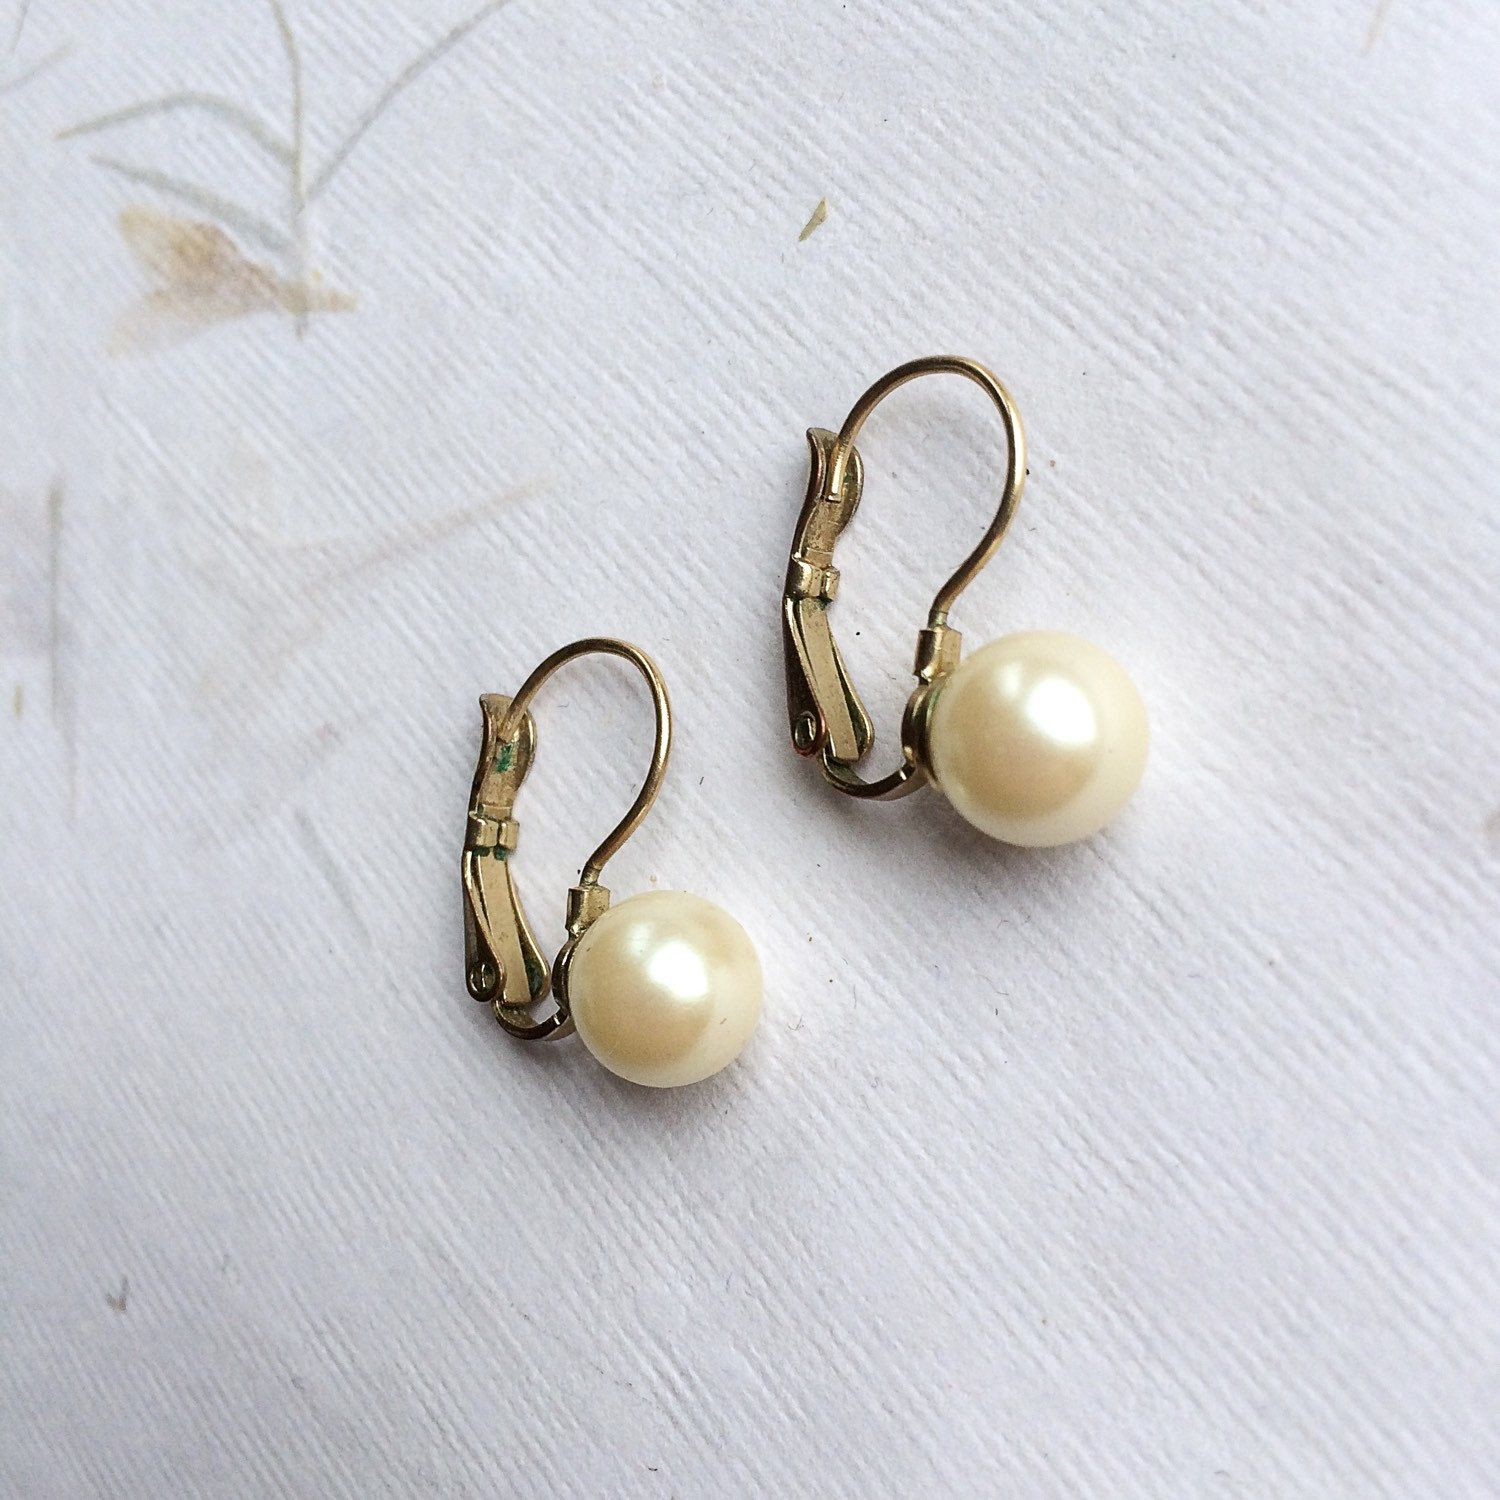 running euro single pearls earring en gold com pearl with mytheresa g gucci earrings